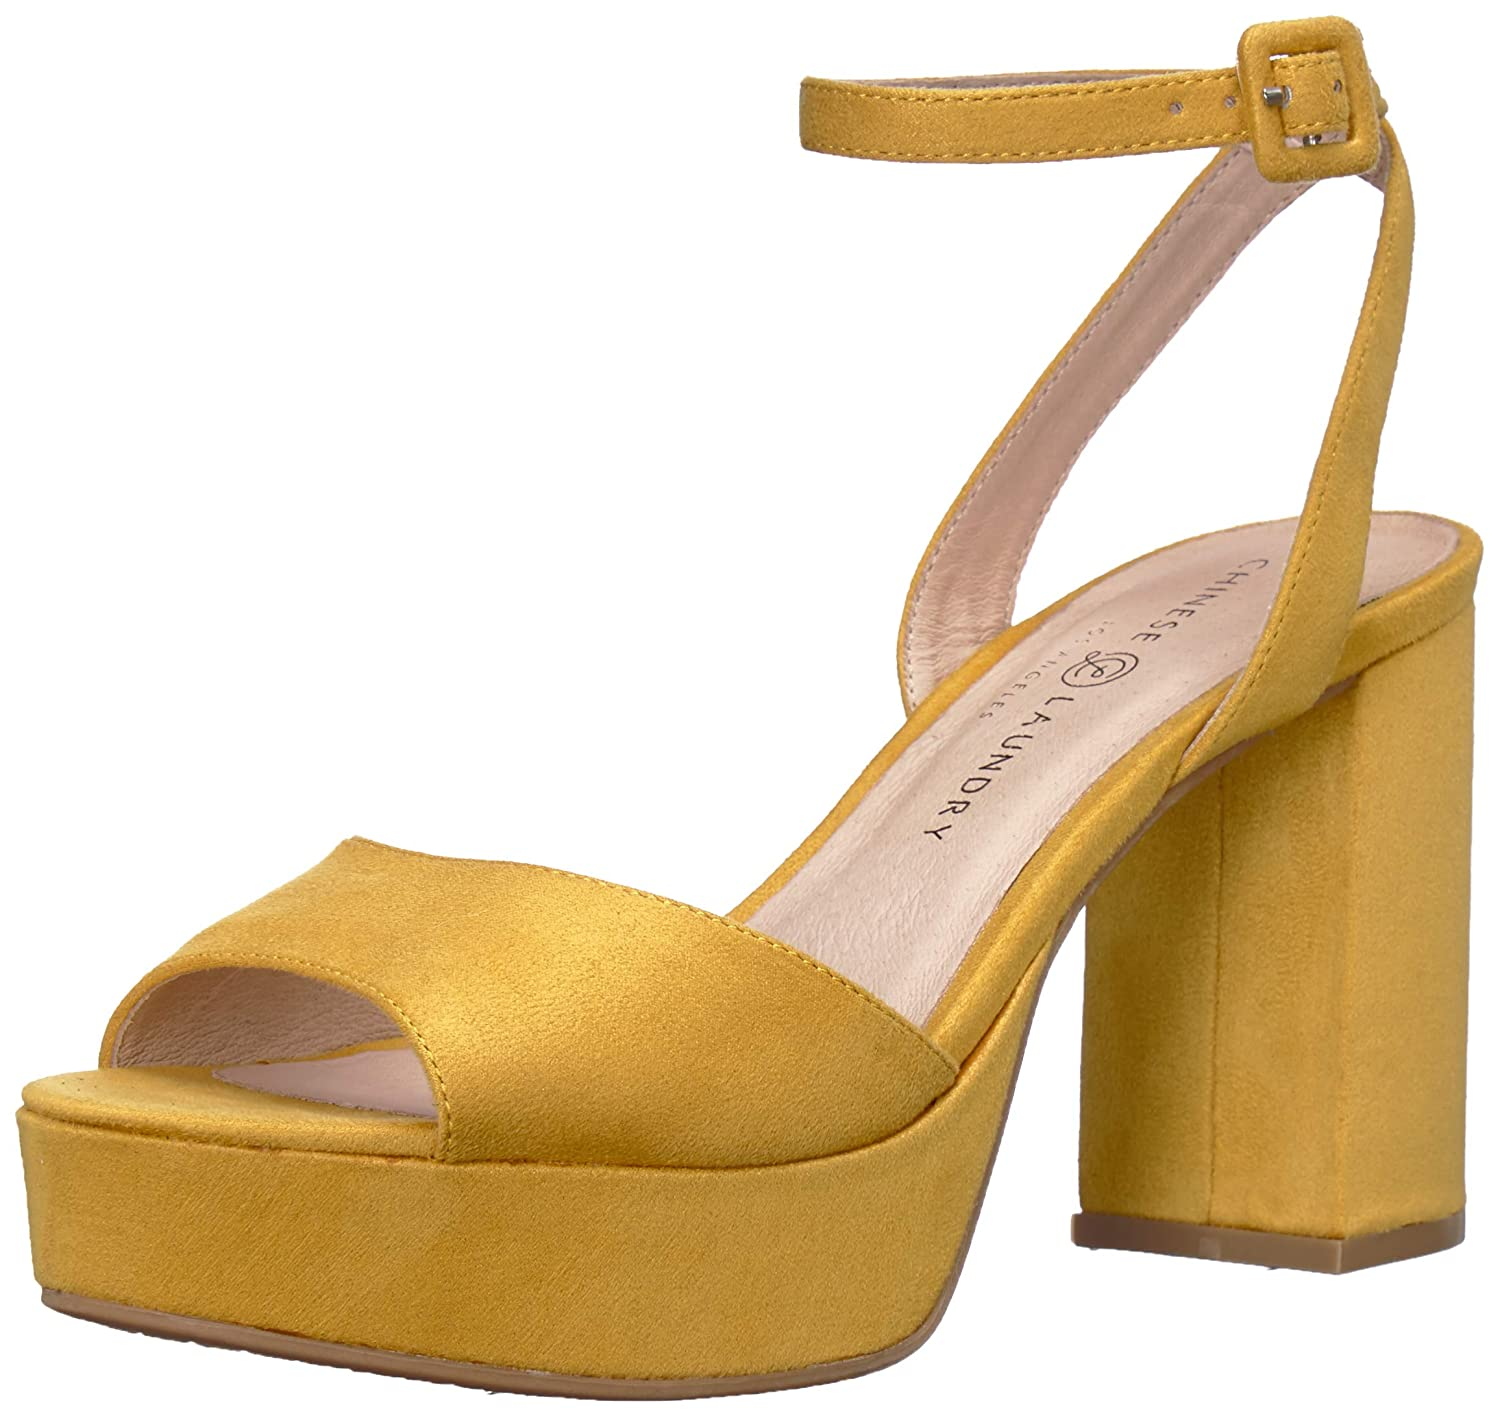 70s Shoes, Platforms, Boots, Heels | 1970s Shoes Chinese Laundry Womens Theresa Heeled Sandal $79.95 AT vintagedancer.com